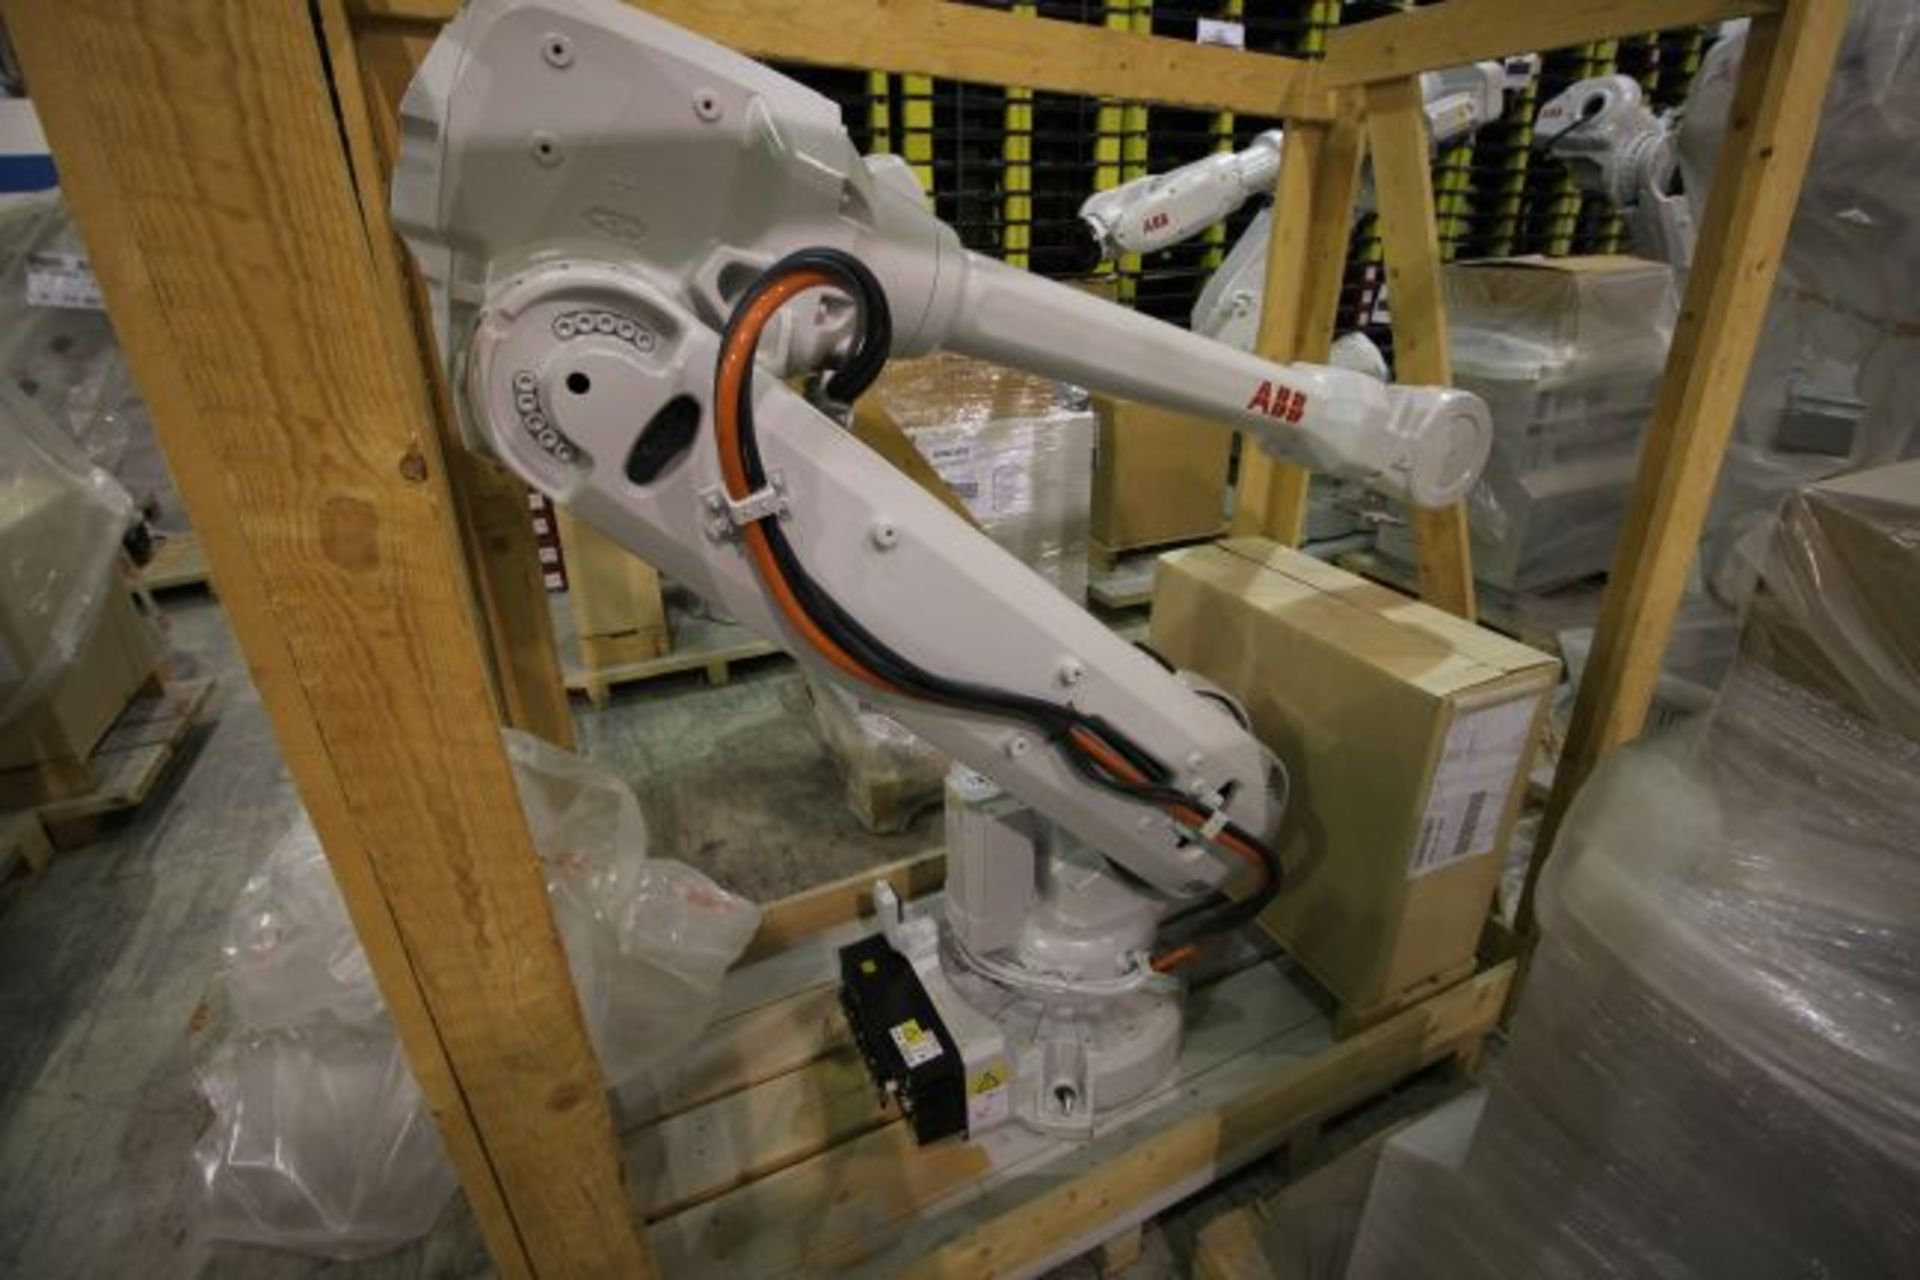 (NEW) ABB ROBOT IRB 4600 2.55/40KG WITH IRC5 CONTROLS, YEAR 2014, SN 101897 TEACH PENDANT& CABLES